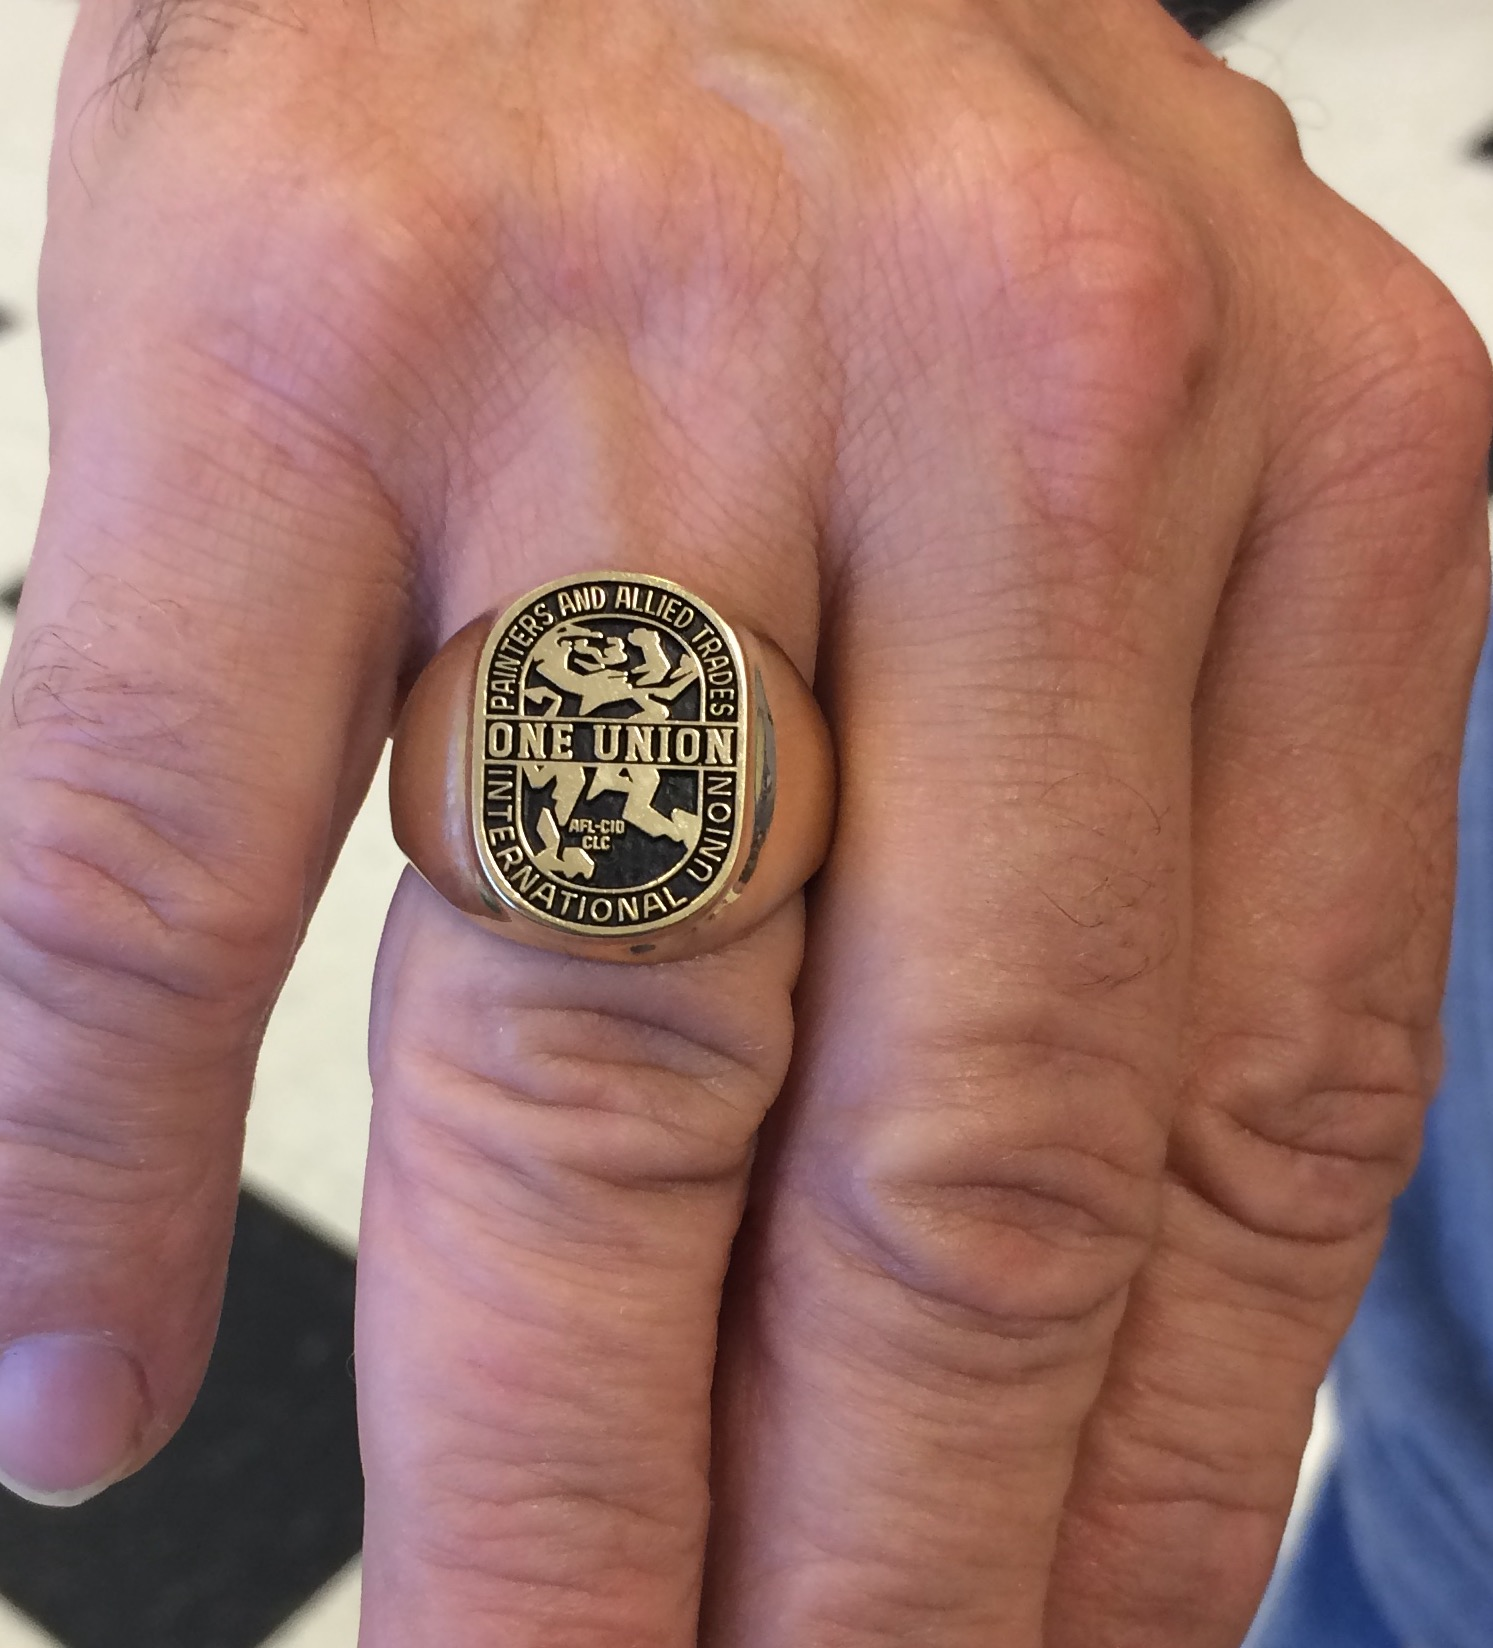 A close-up of Dave Crisp's ring.